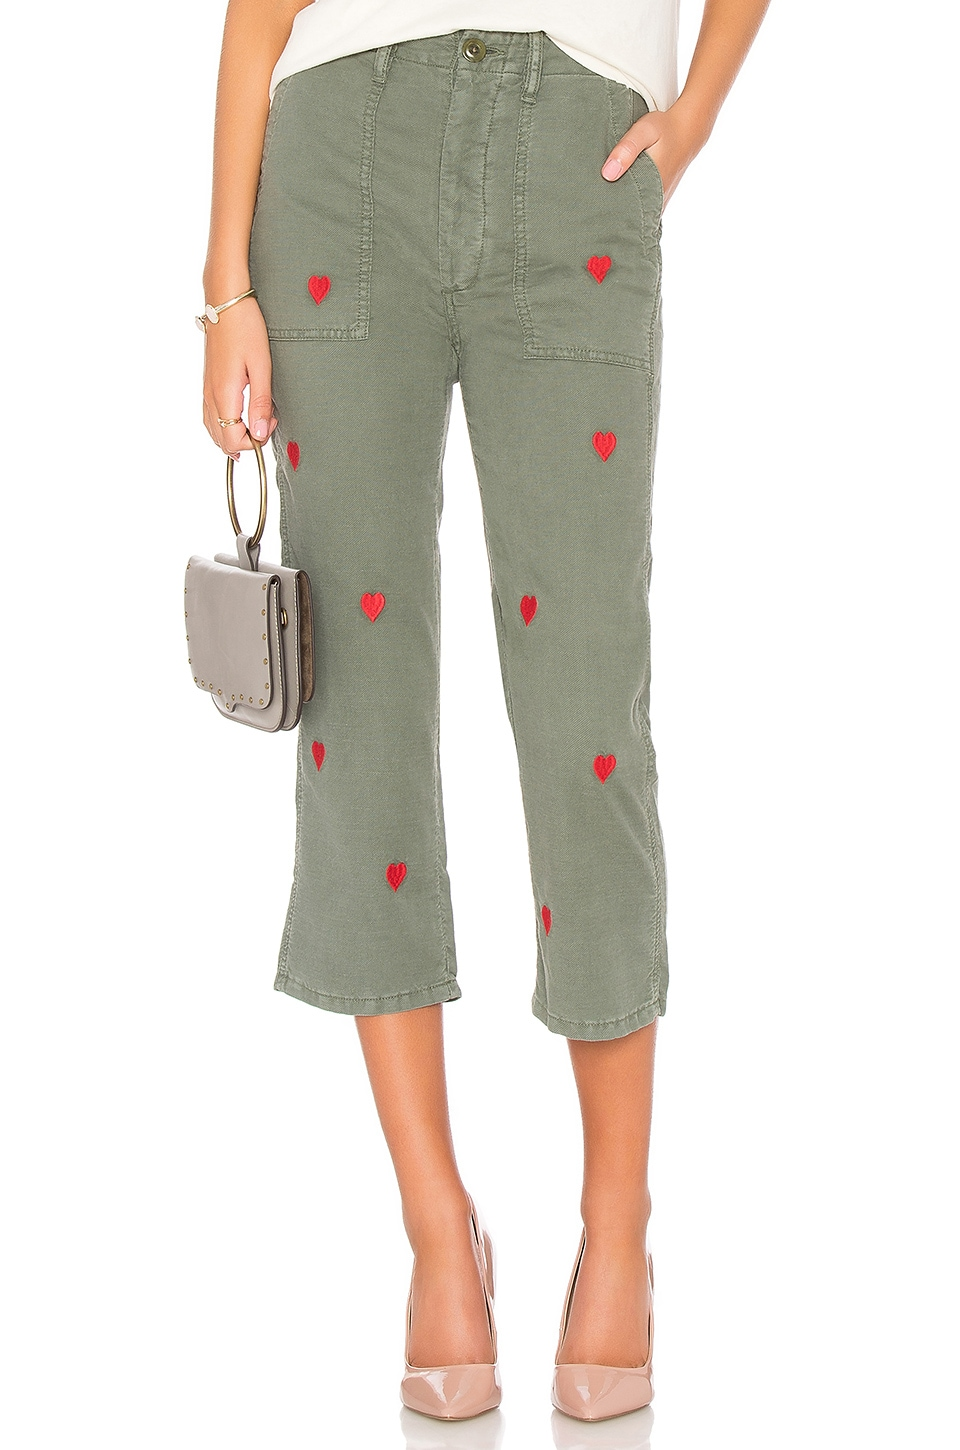 The Straight Leg Army Pant